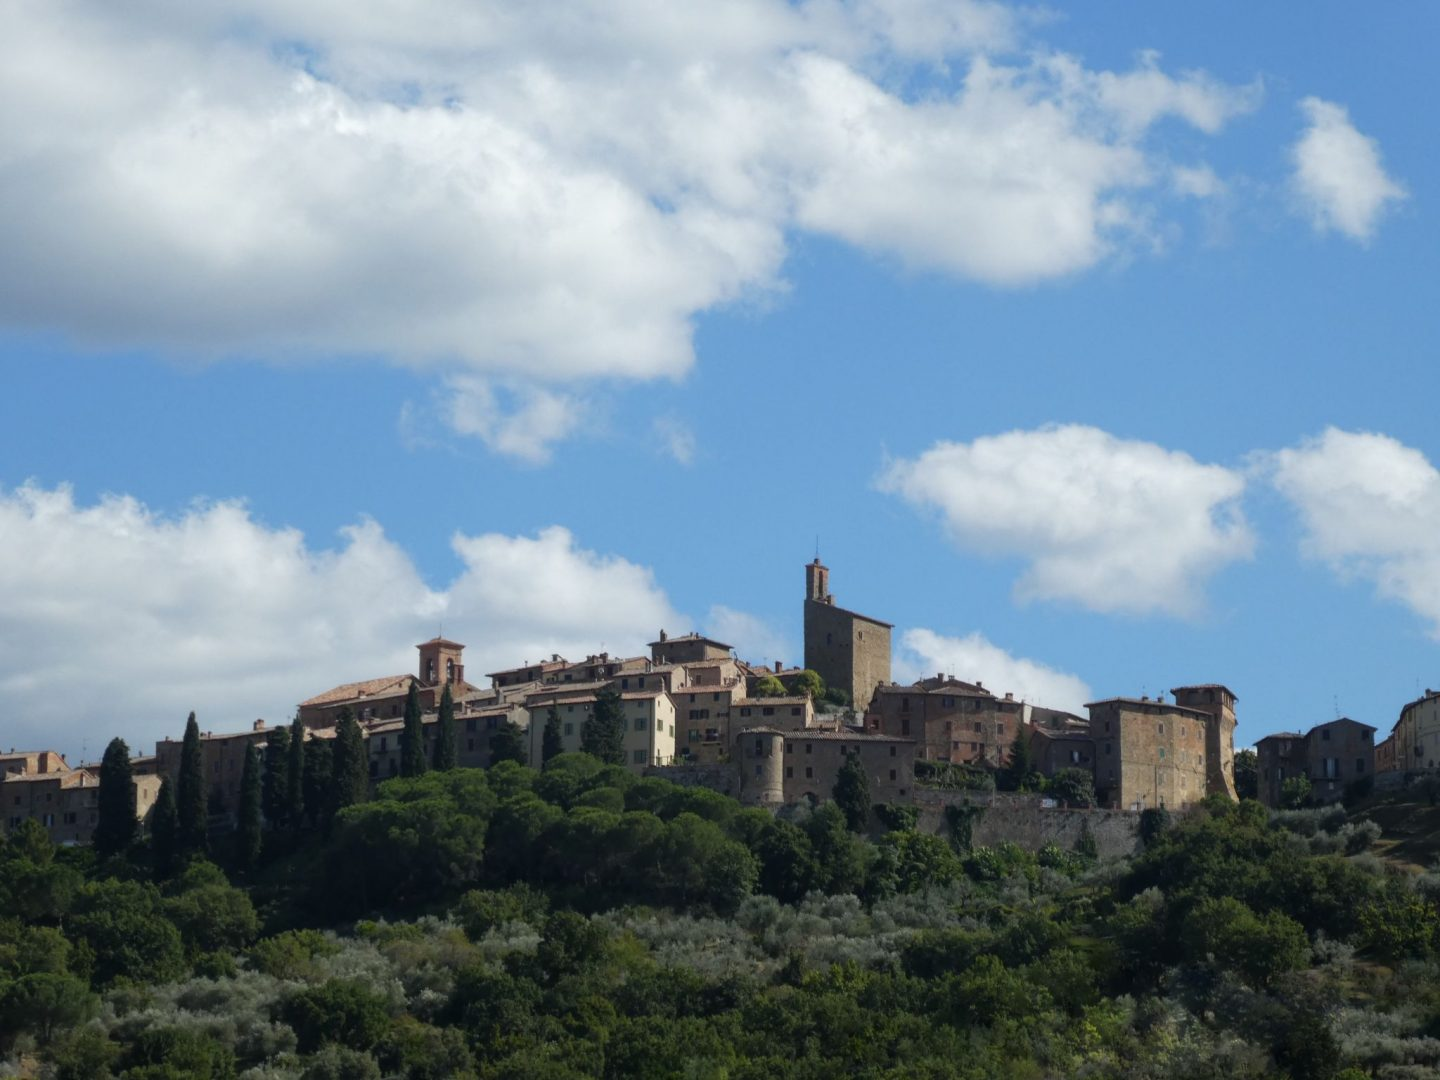 Panicale (27 August to 10 September 2019)